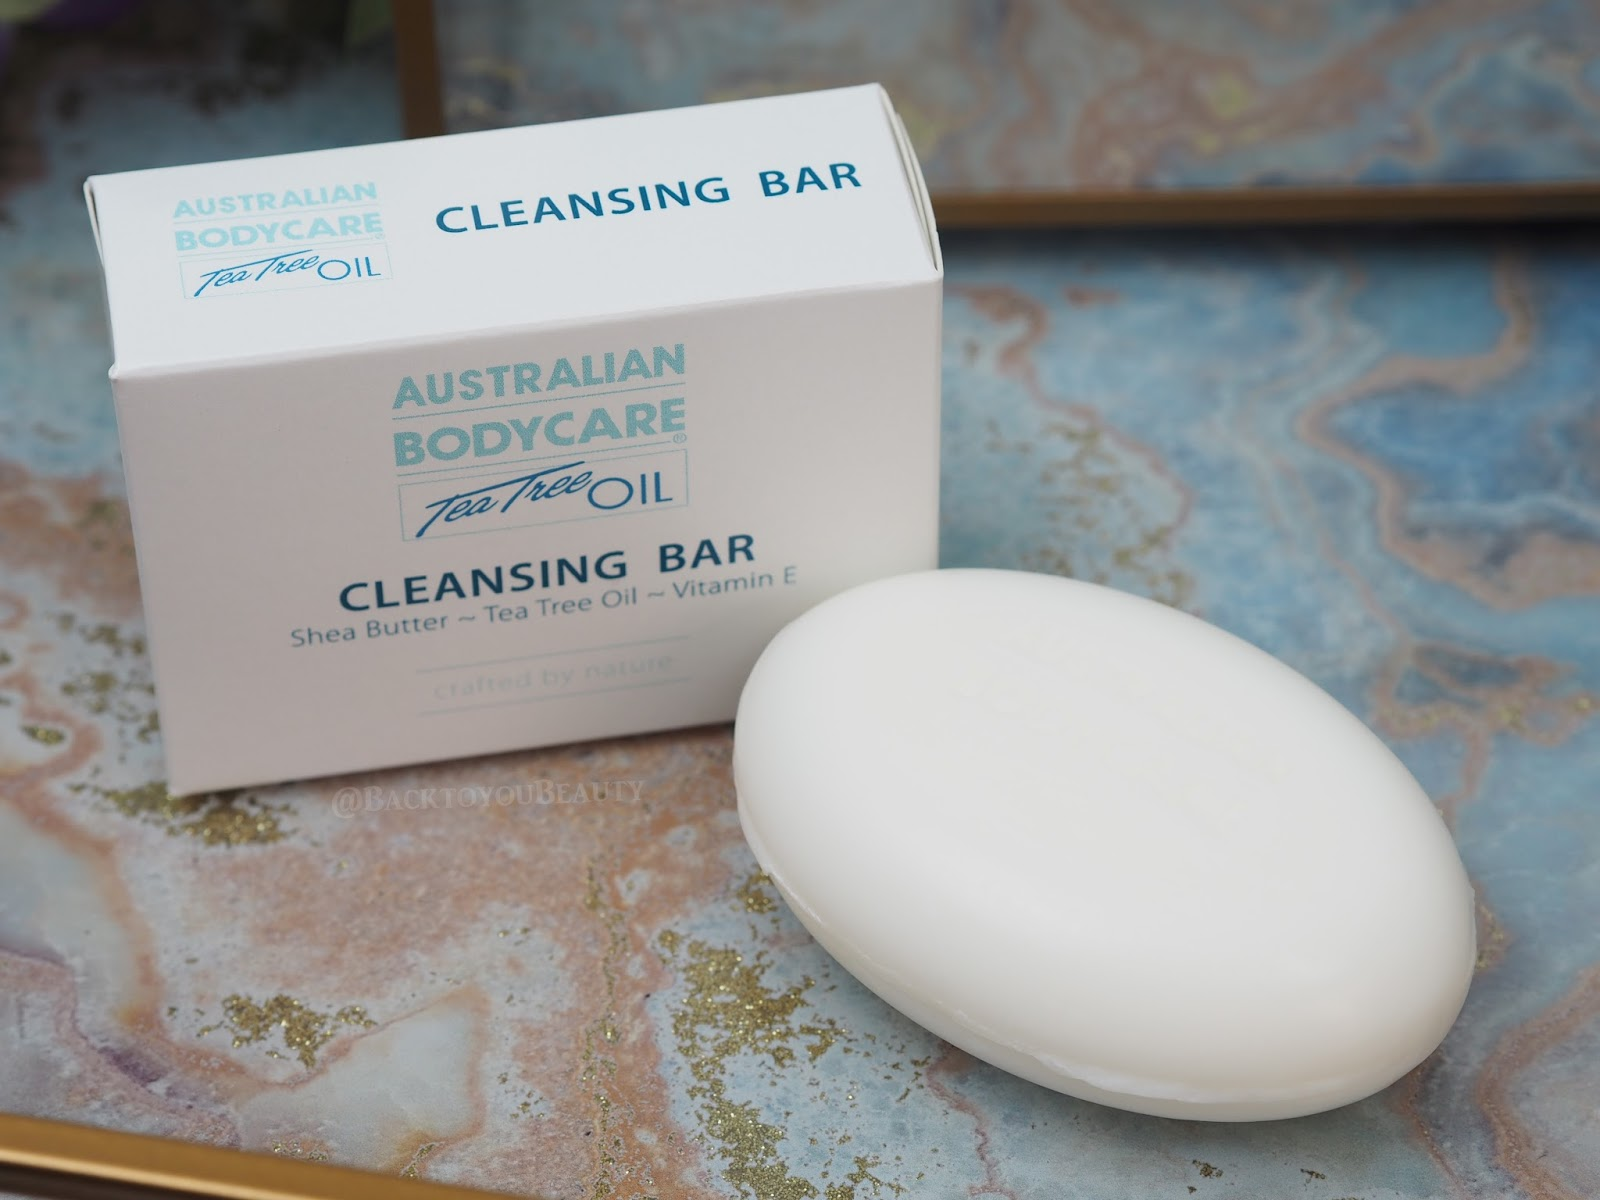 Australian Bodycare Cleansing Bar